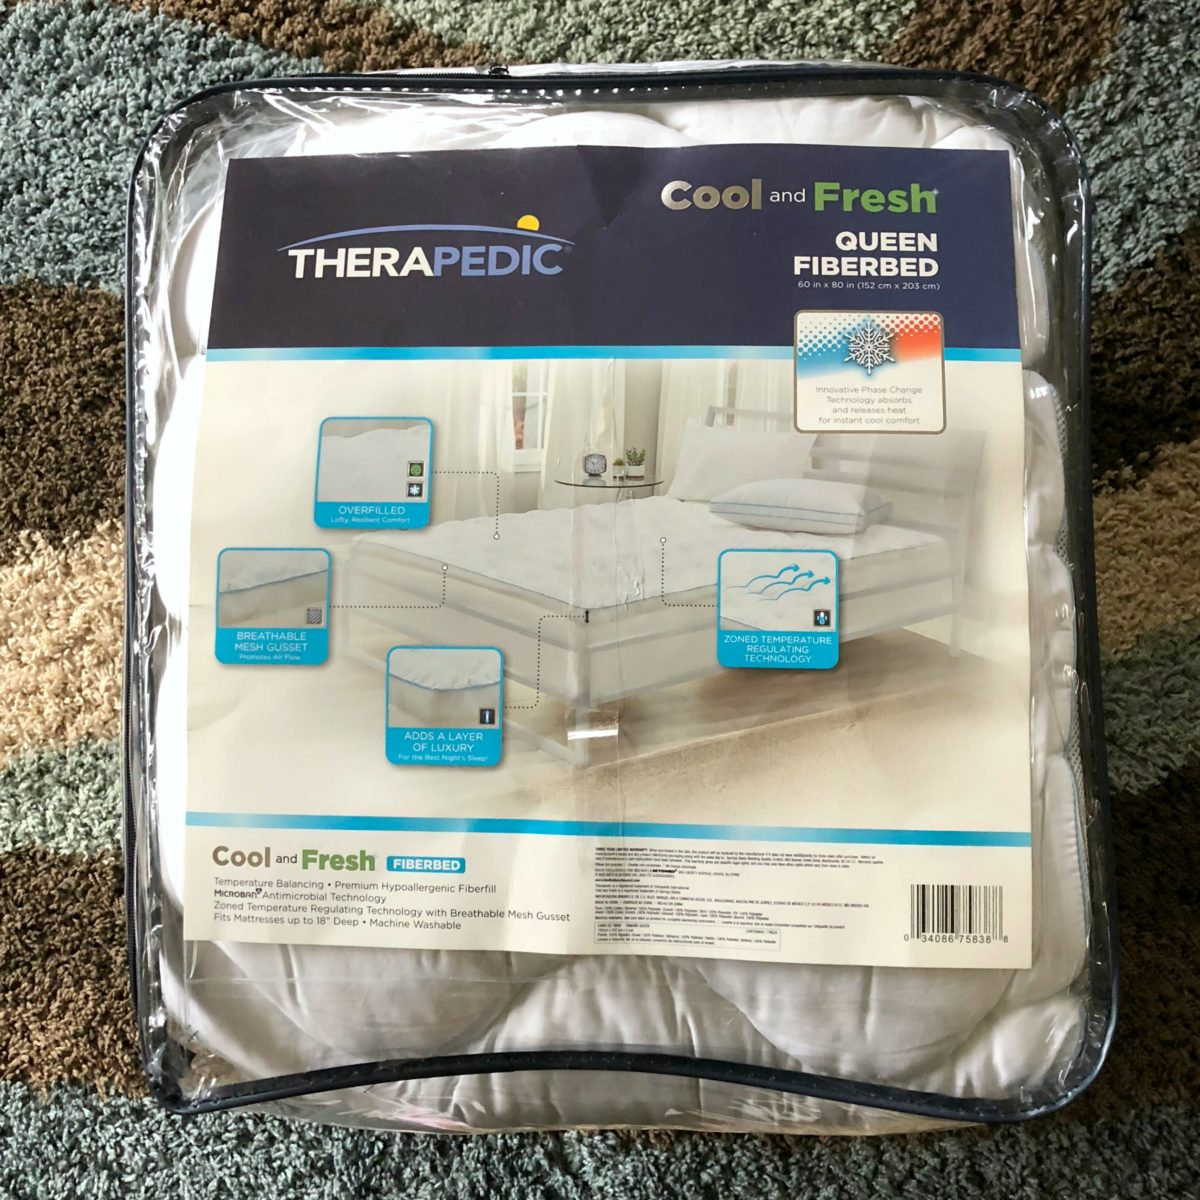 Therapedic Fiber Bed